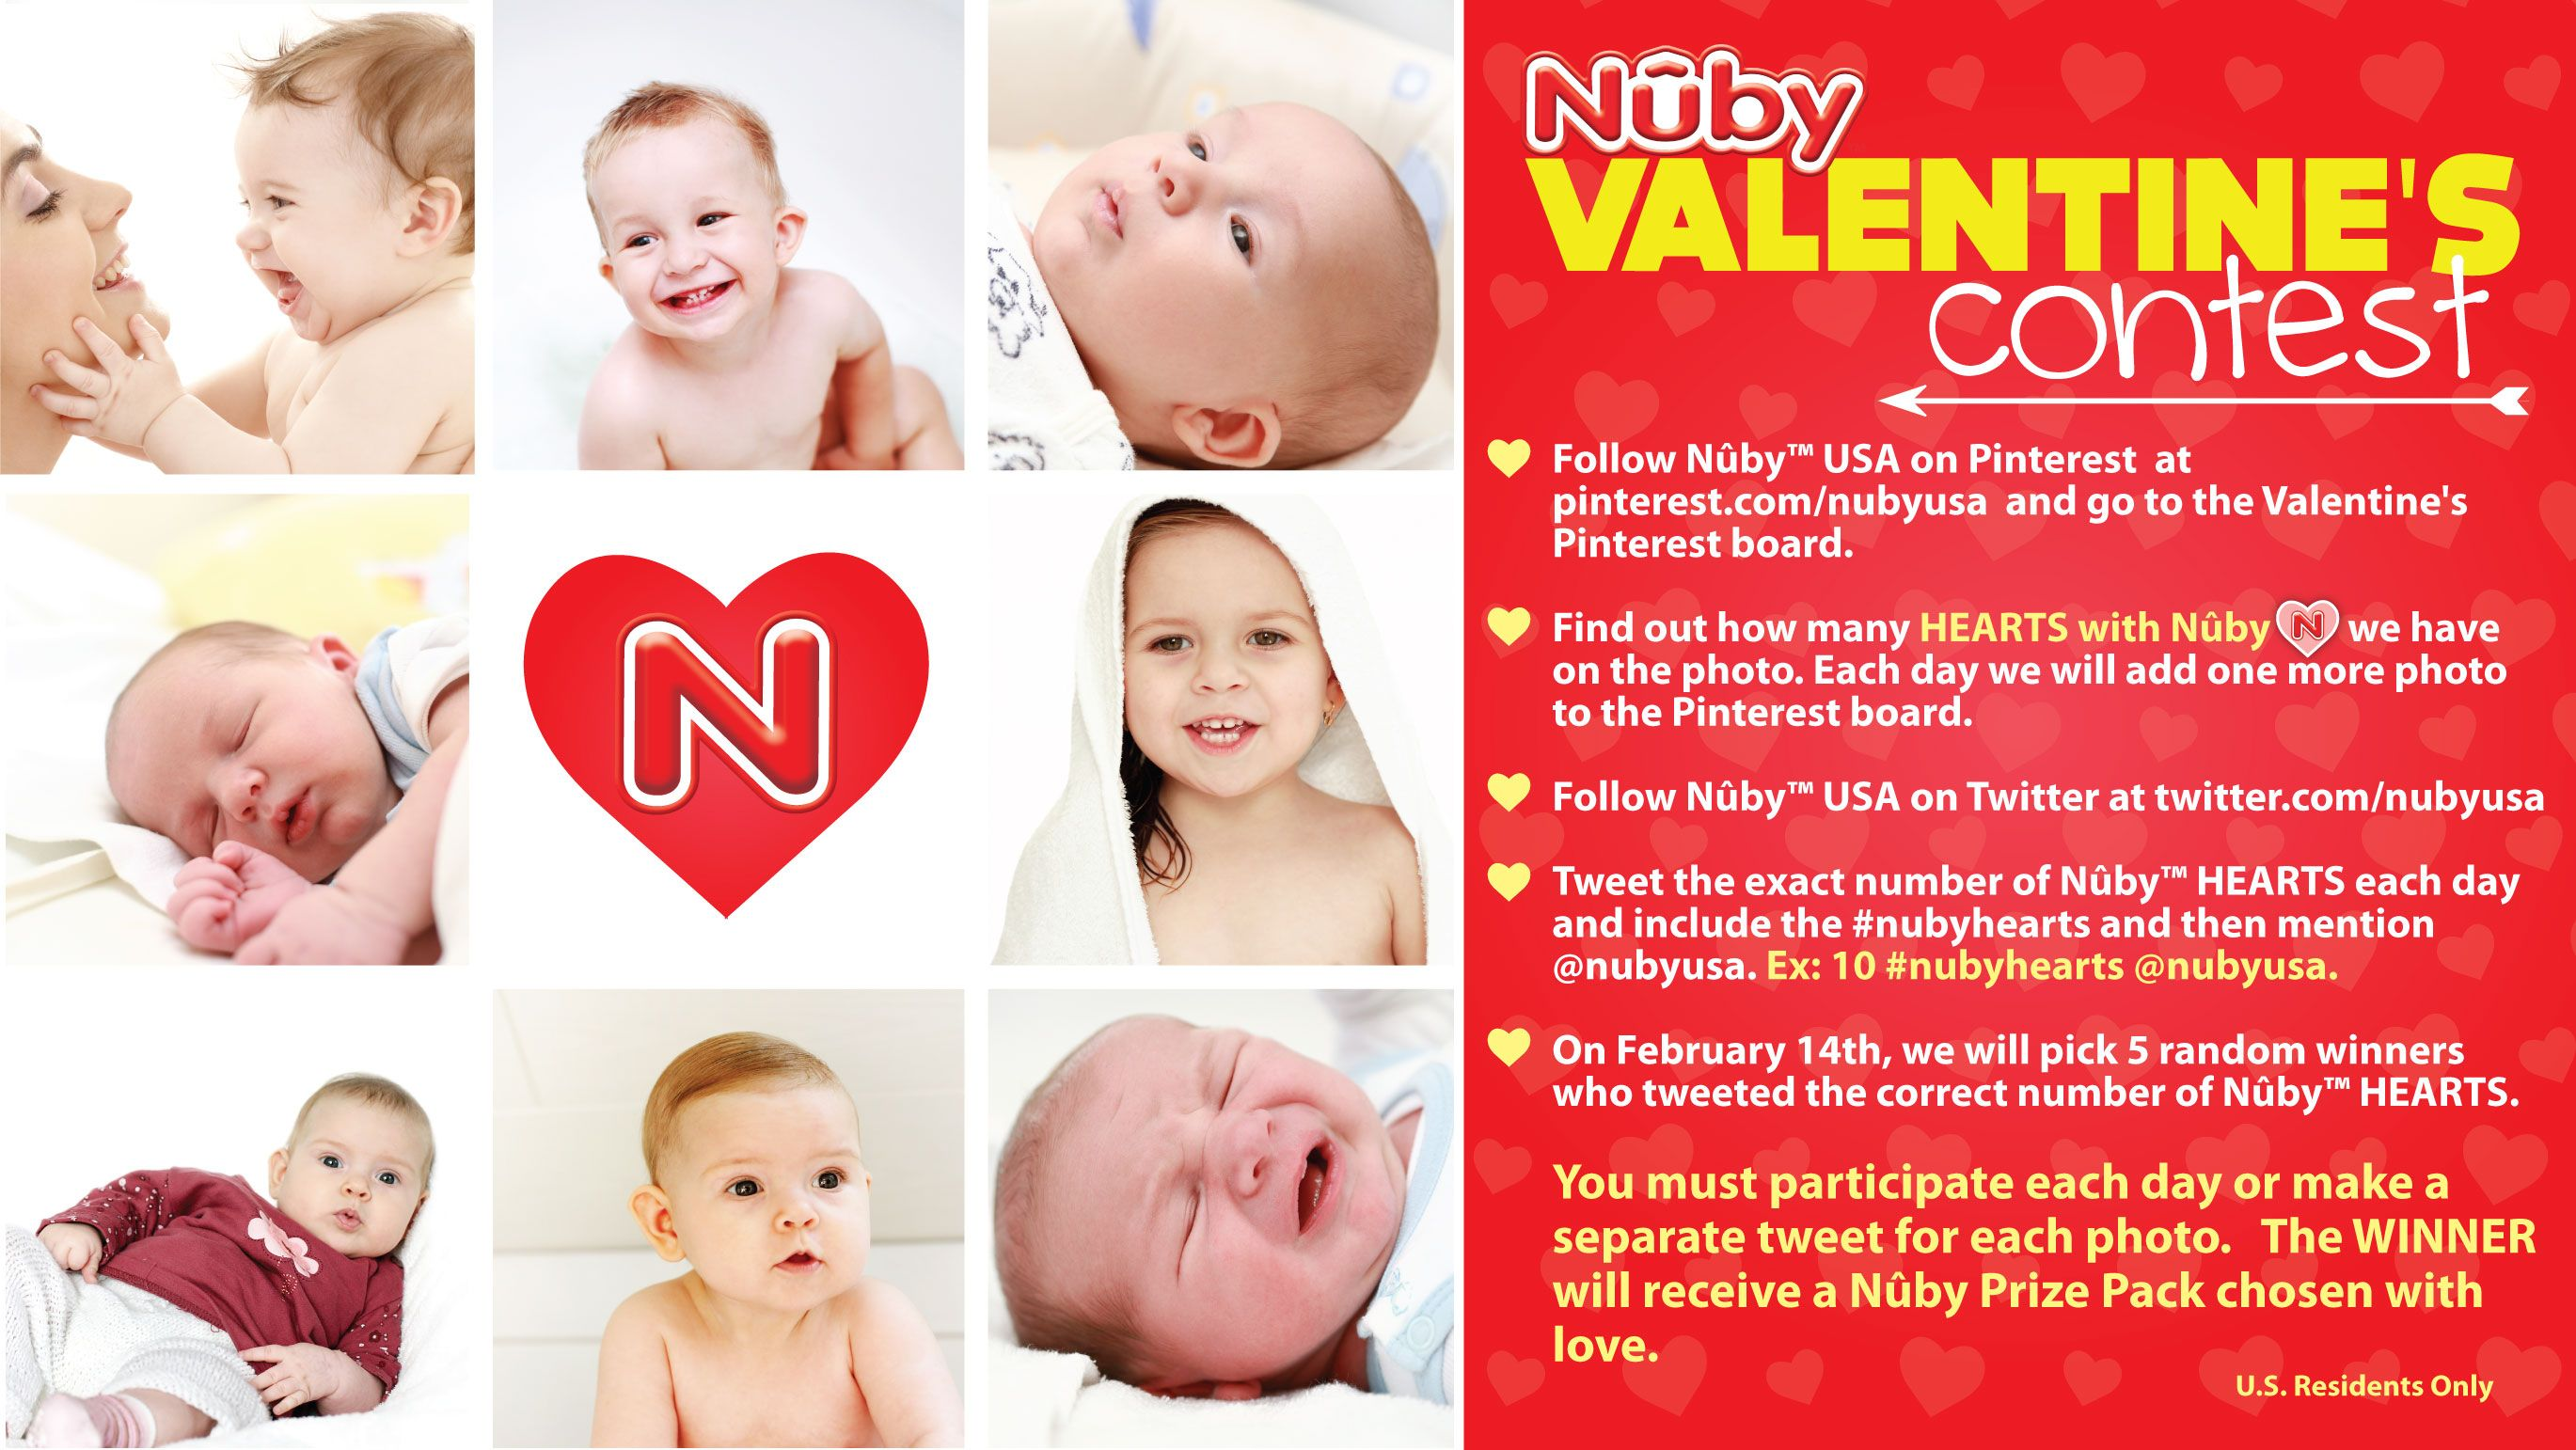 Nuby Valentine's Contest! Follow www.pinterest.com/nubyusa See photo for instructions on how to enter for a chance to WIN a Nuby Prize Pack! Five winners will be announced on Thursday, February 14th!  Thanks & Good Luck, Nuby_Vanessa